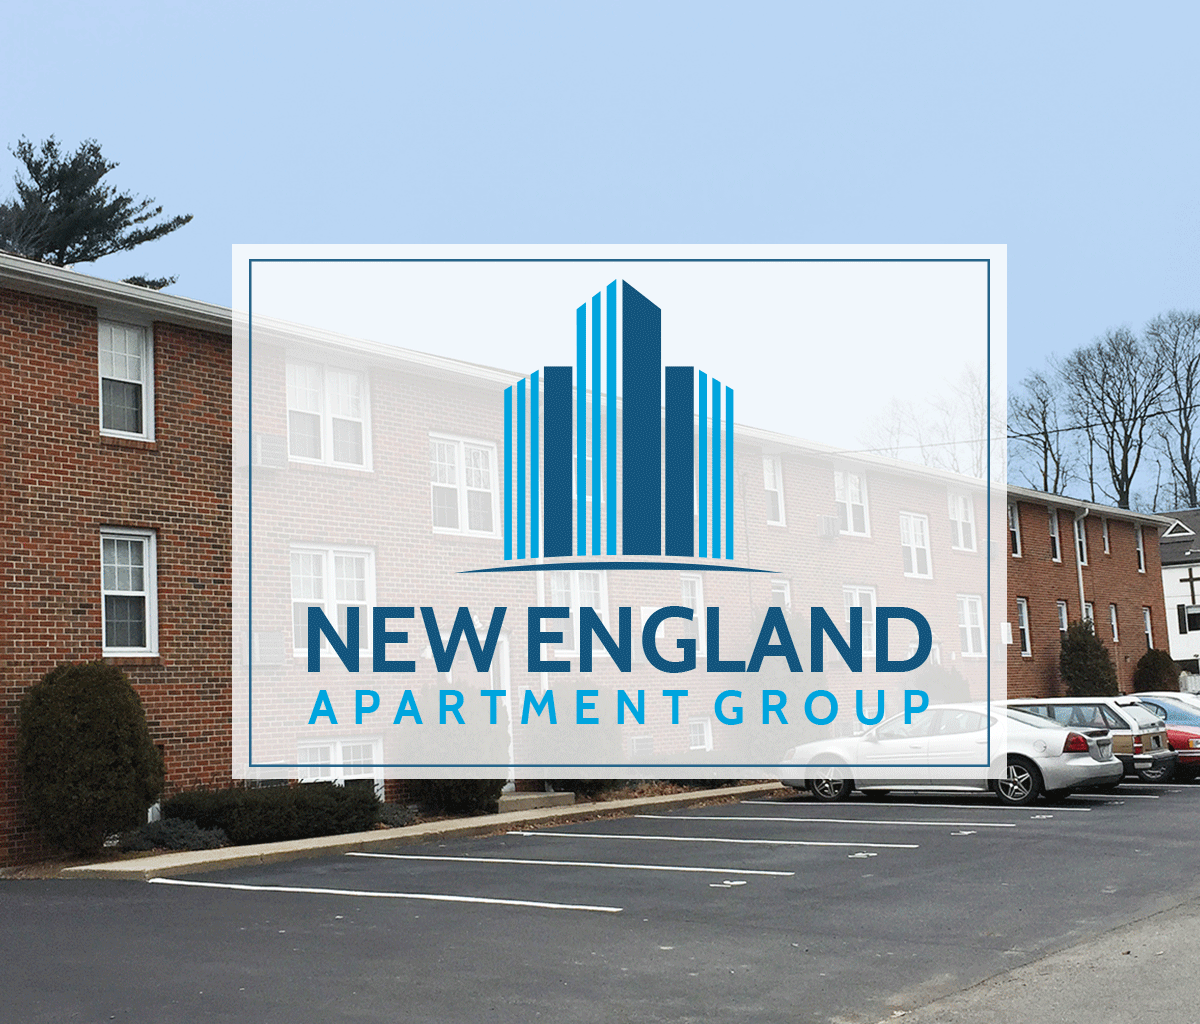 England Apartments: New England Apartment Group